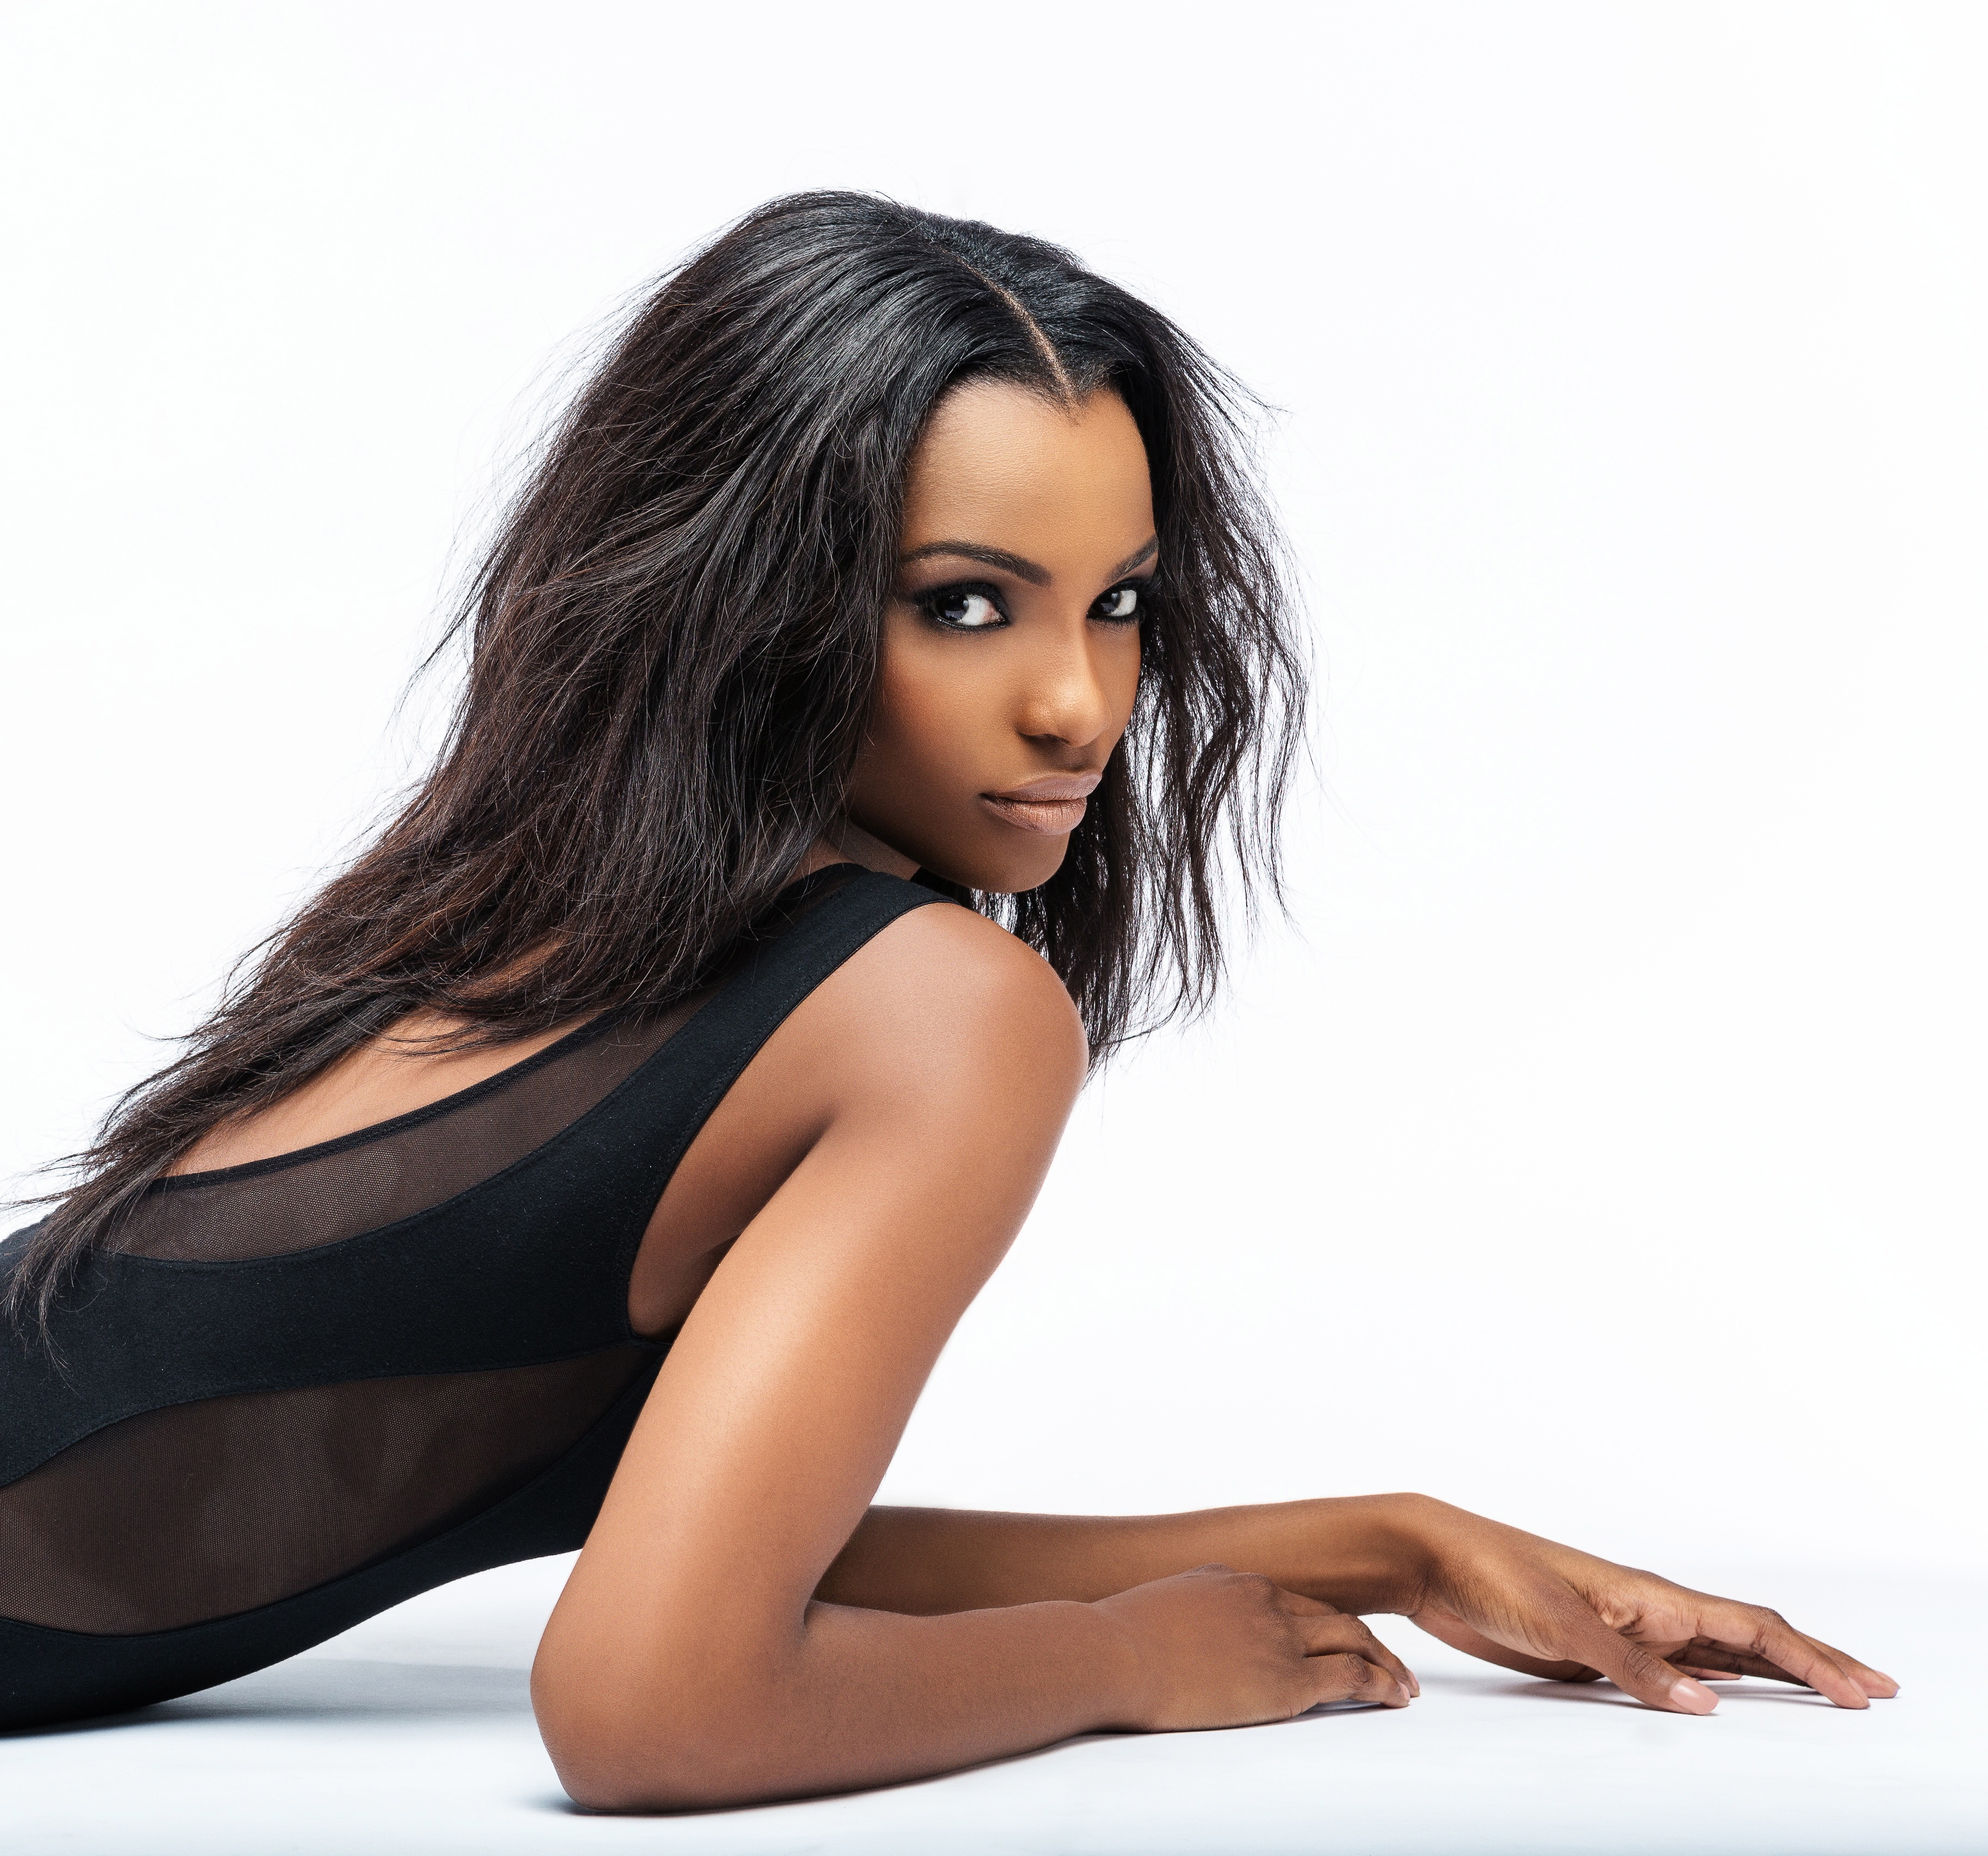 Nigerian women sexy photos